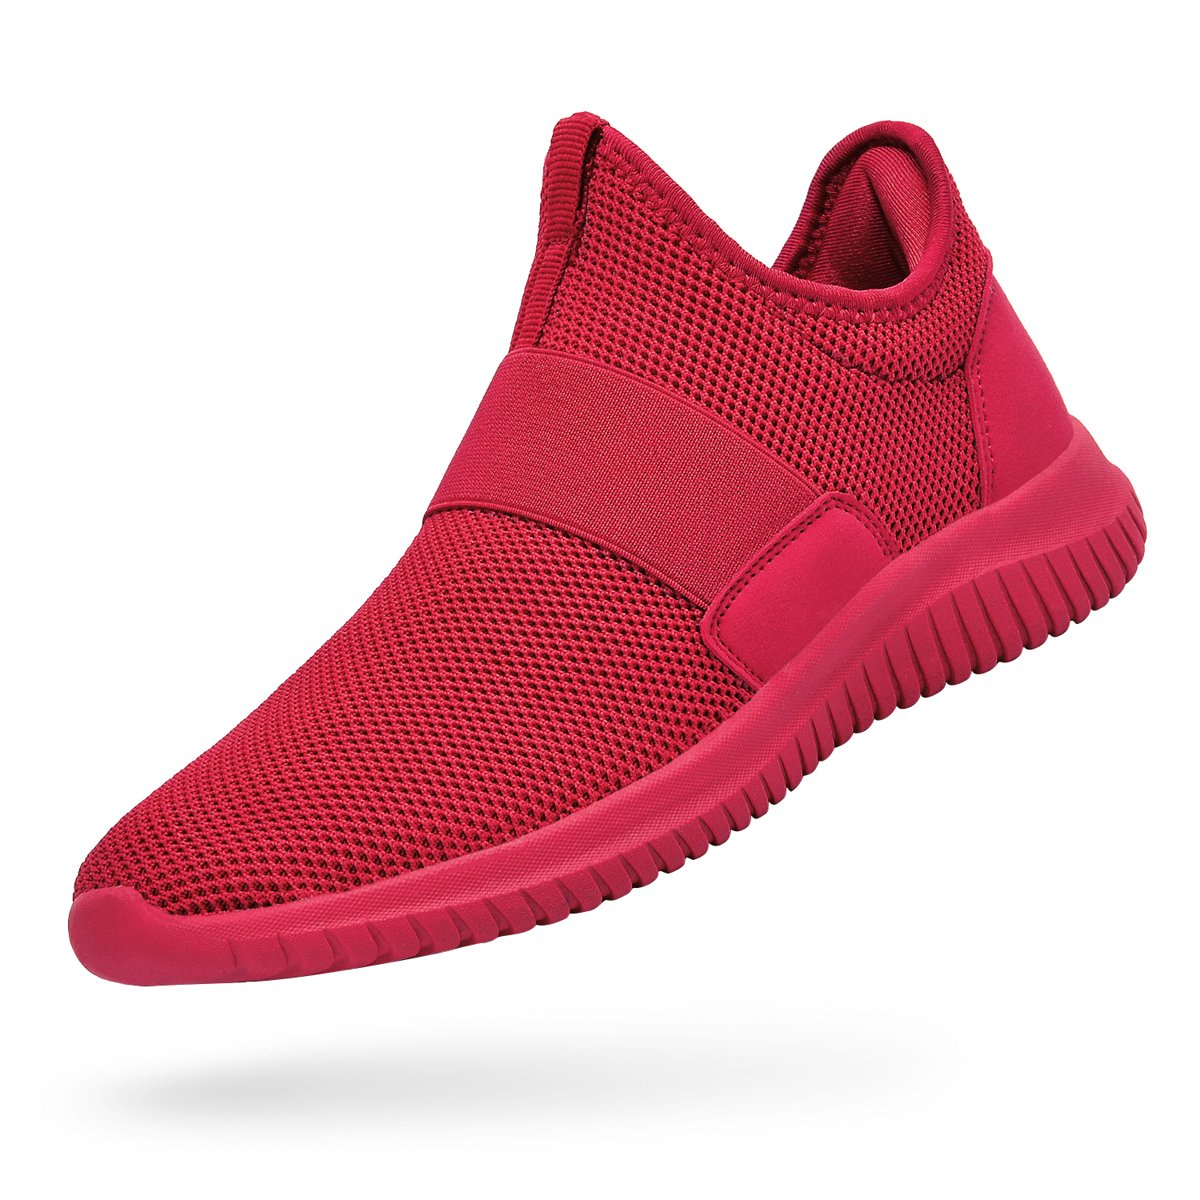 Troadlop Womens Sneakers Lightweight Breathable Mesh Slip On Casual Tennis Shoes Athletic Walking Running Sneakers Red Size 7.5 B(M) US